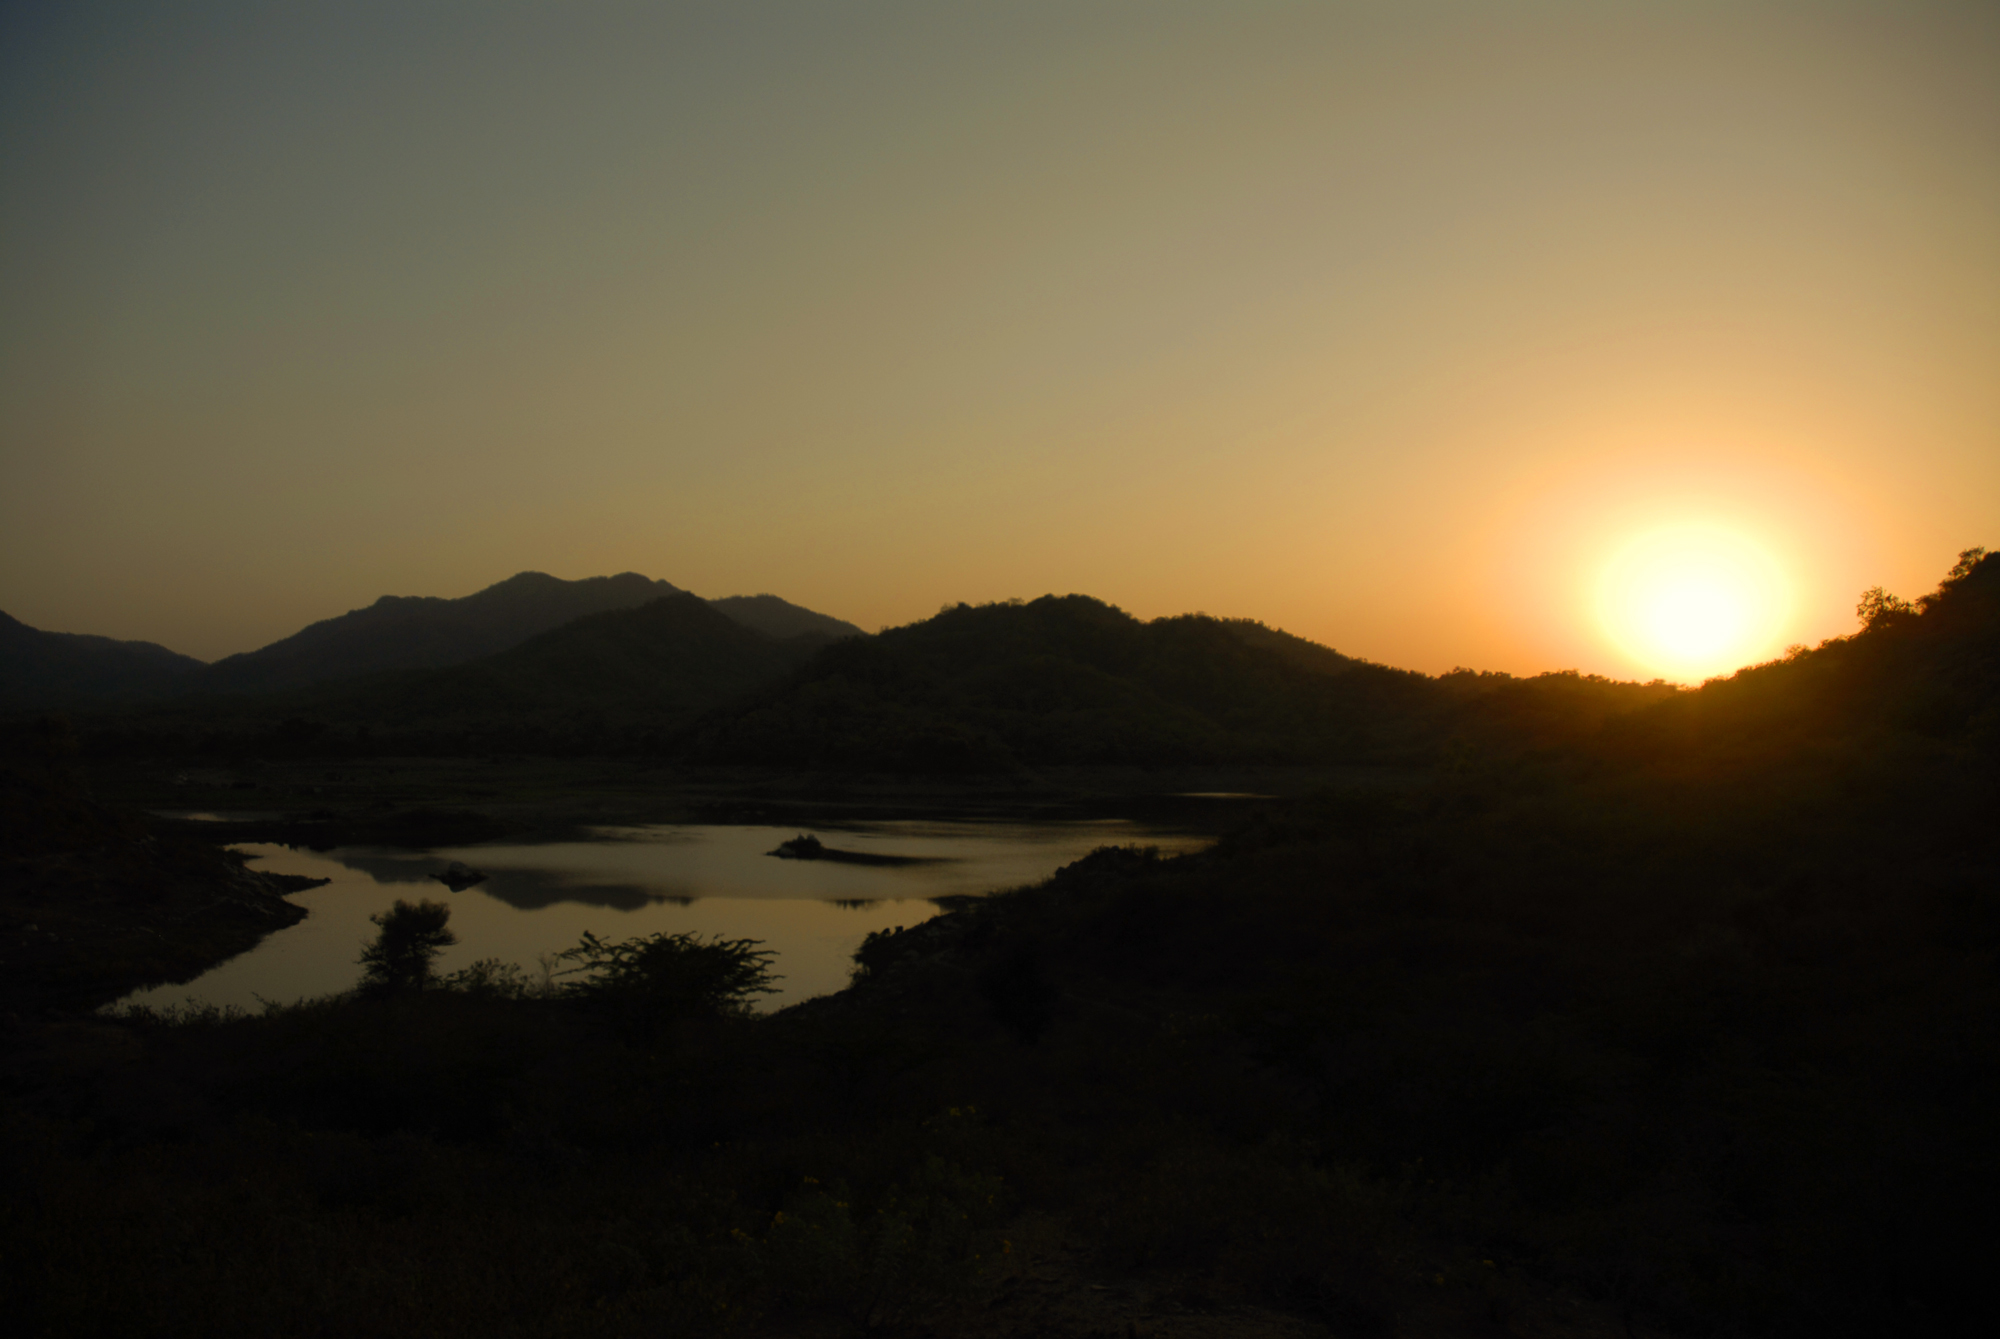 Photo by Kristian Bertel - This beautiful evening sunset landscape was photographed near Ranakpur in Rajasthan, India. Ranakpur is a village located in Desuri Tehsil near Sadri Village in the Pali district of Rajasthan. Though a large percentage of the total area is desert, and even though there is little forest cover, Rajasthan has a rich and varied flora and fauna.